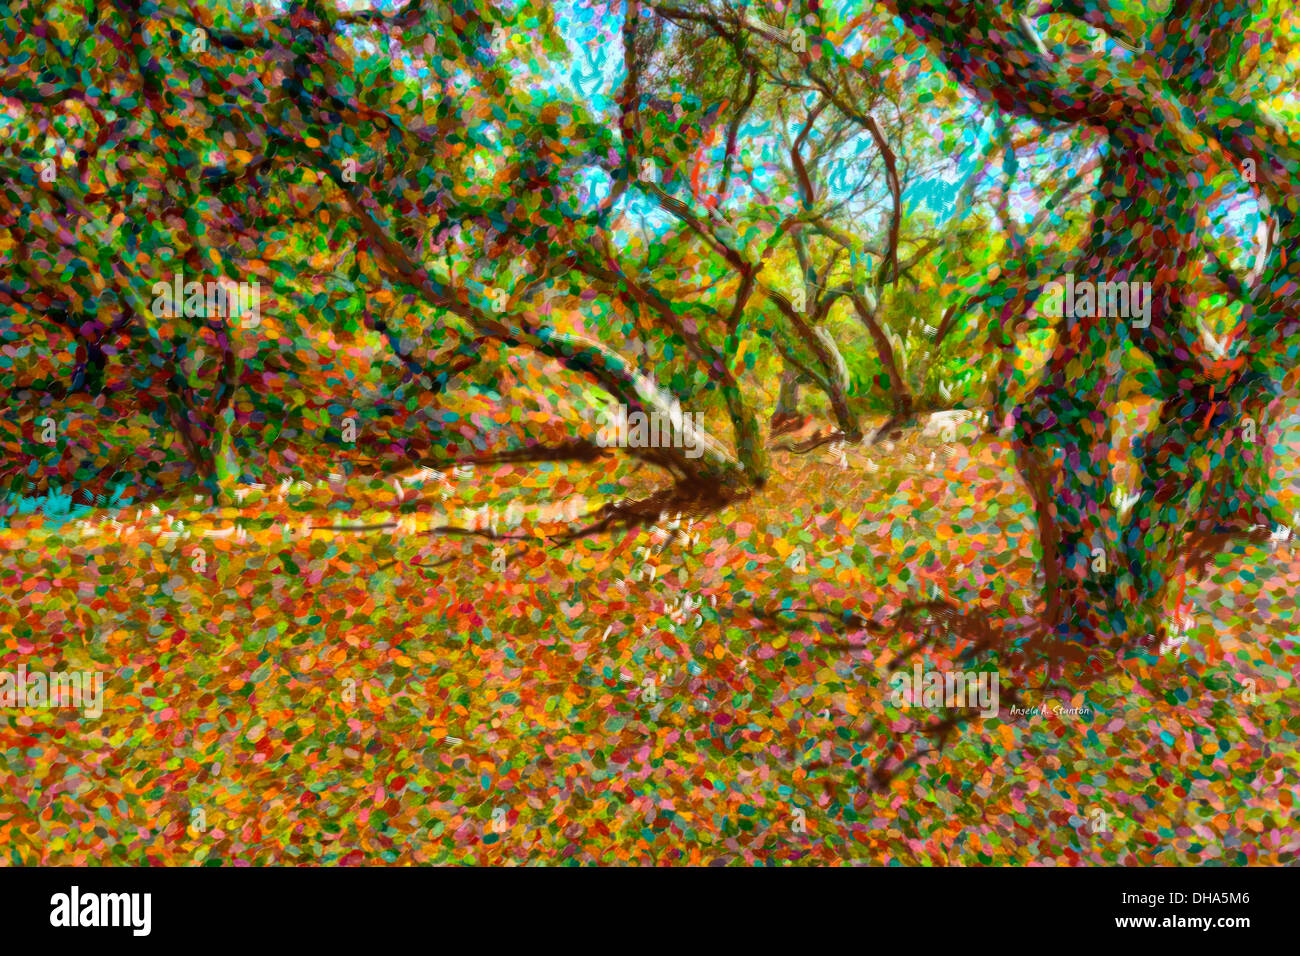 Computer Generated Image Of Autumn Coloured Leaves Fallen From Trees - Stock Image